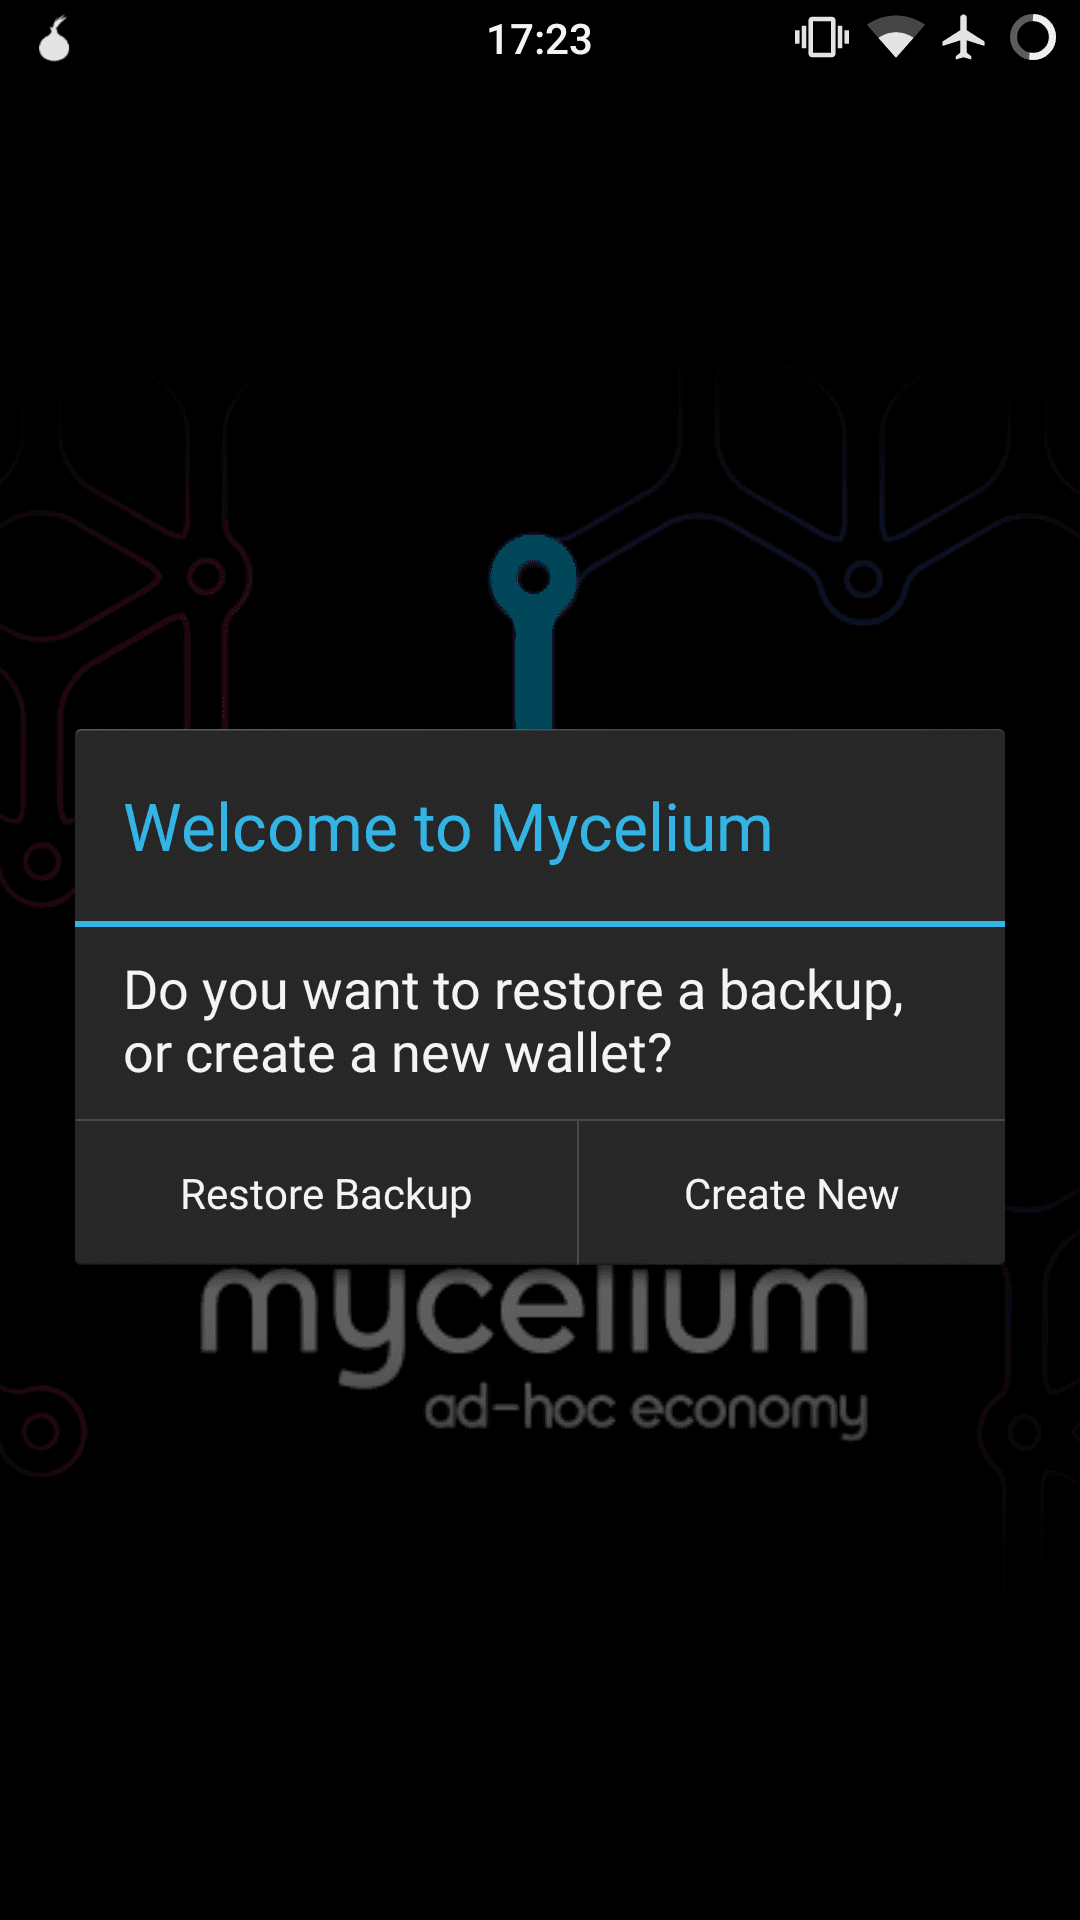 Welcome to Mycelium